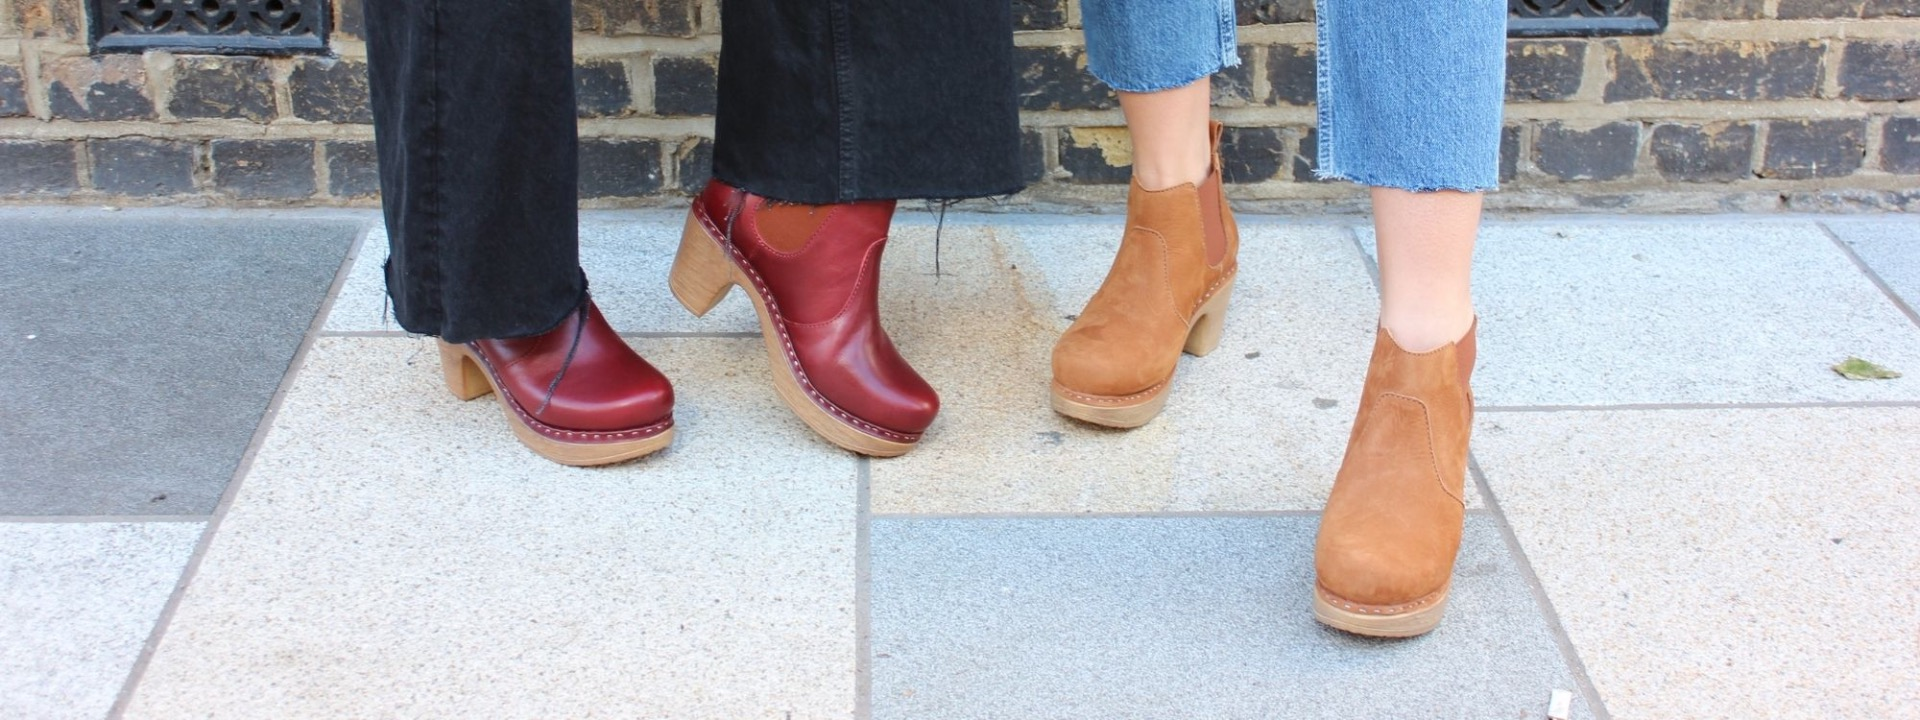 How to style boots this season